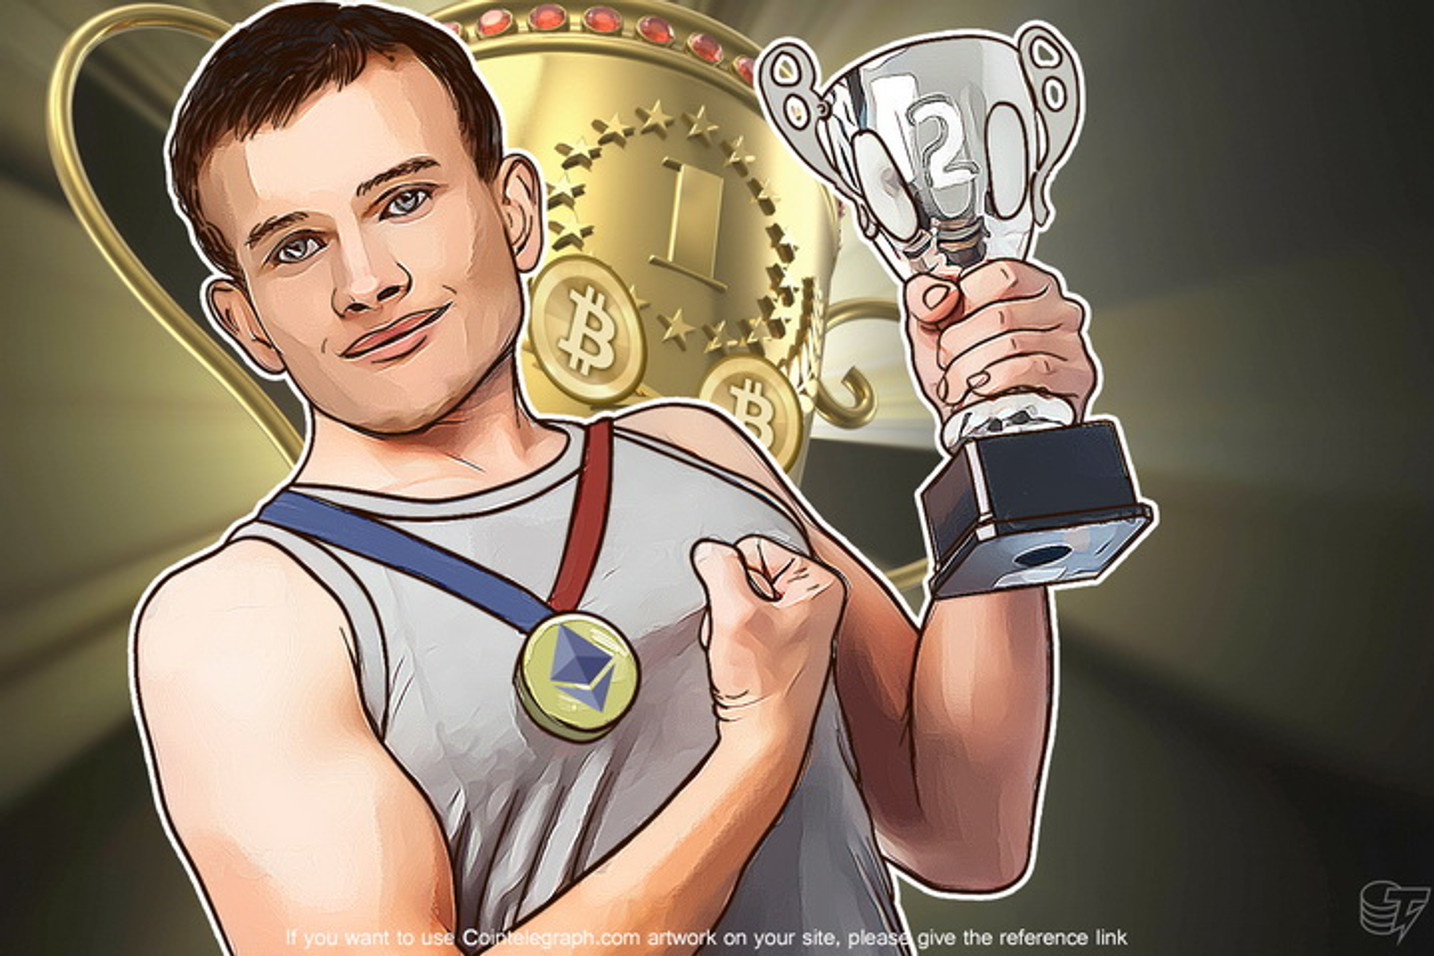 Eight Months Since Release, Ethereum Is Second Only To Bitcoin